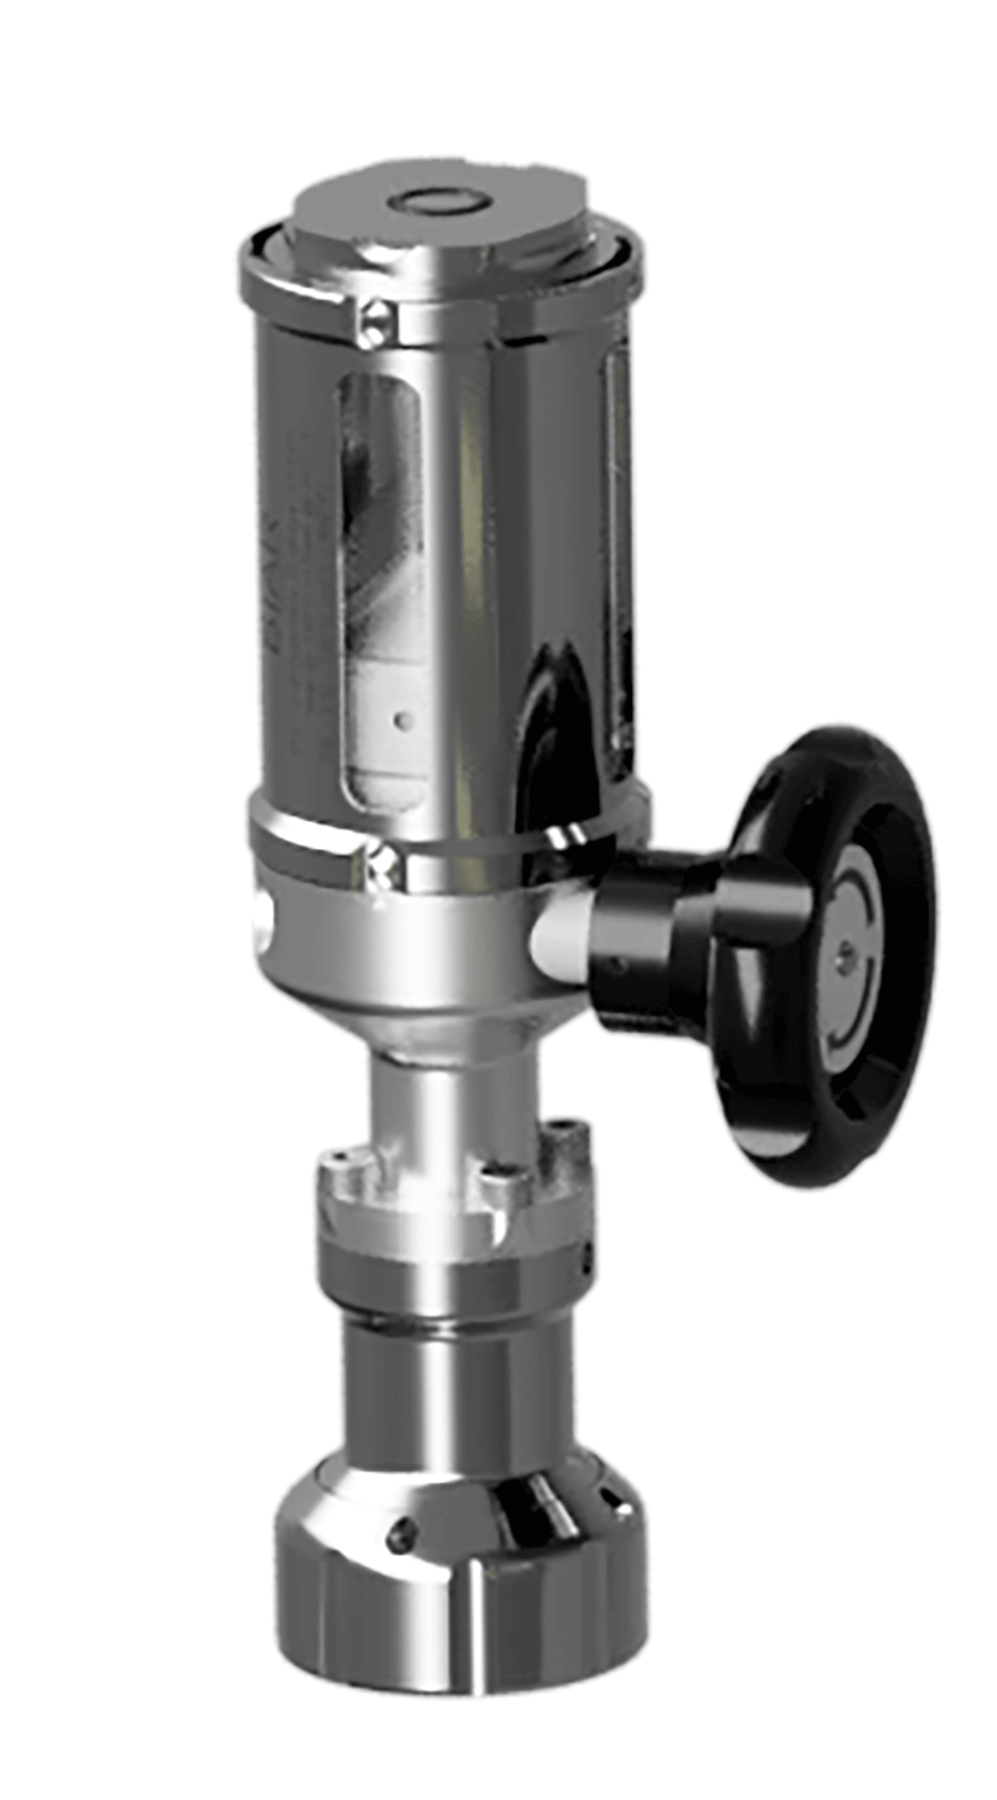 Sample cylinder with piston-injector